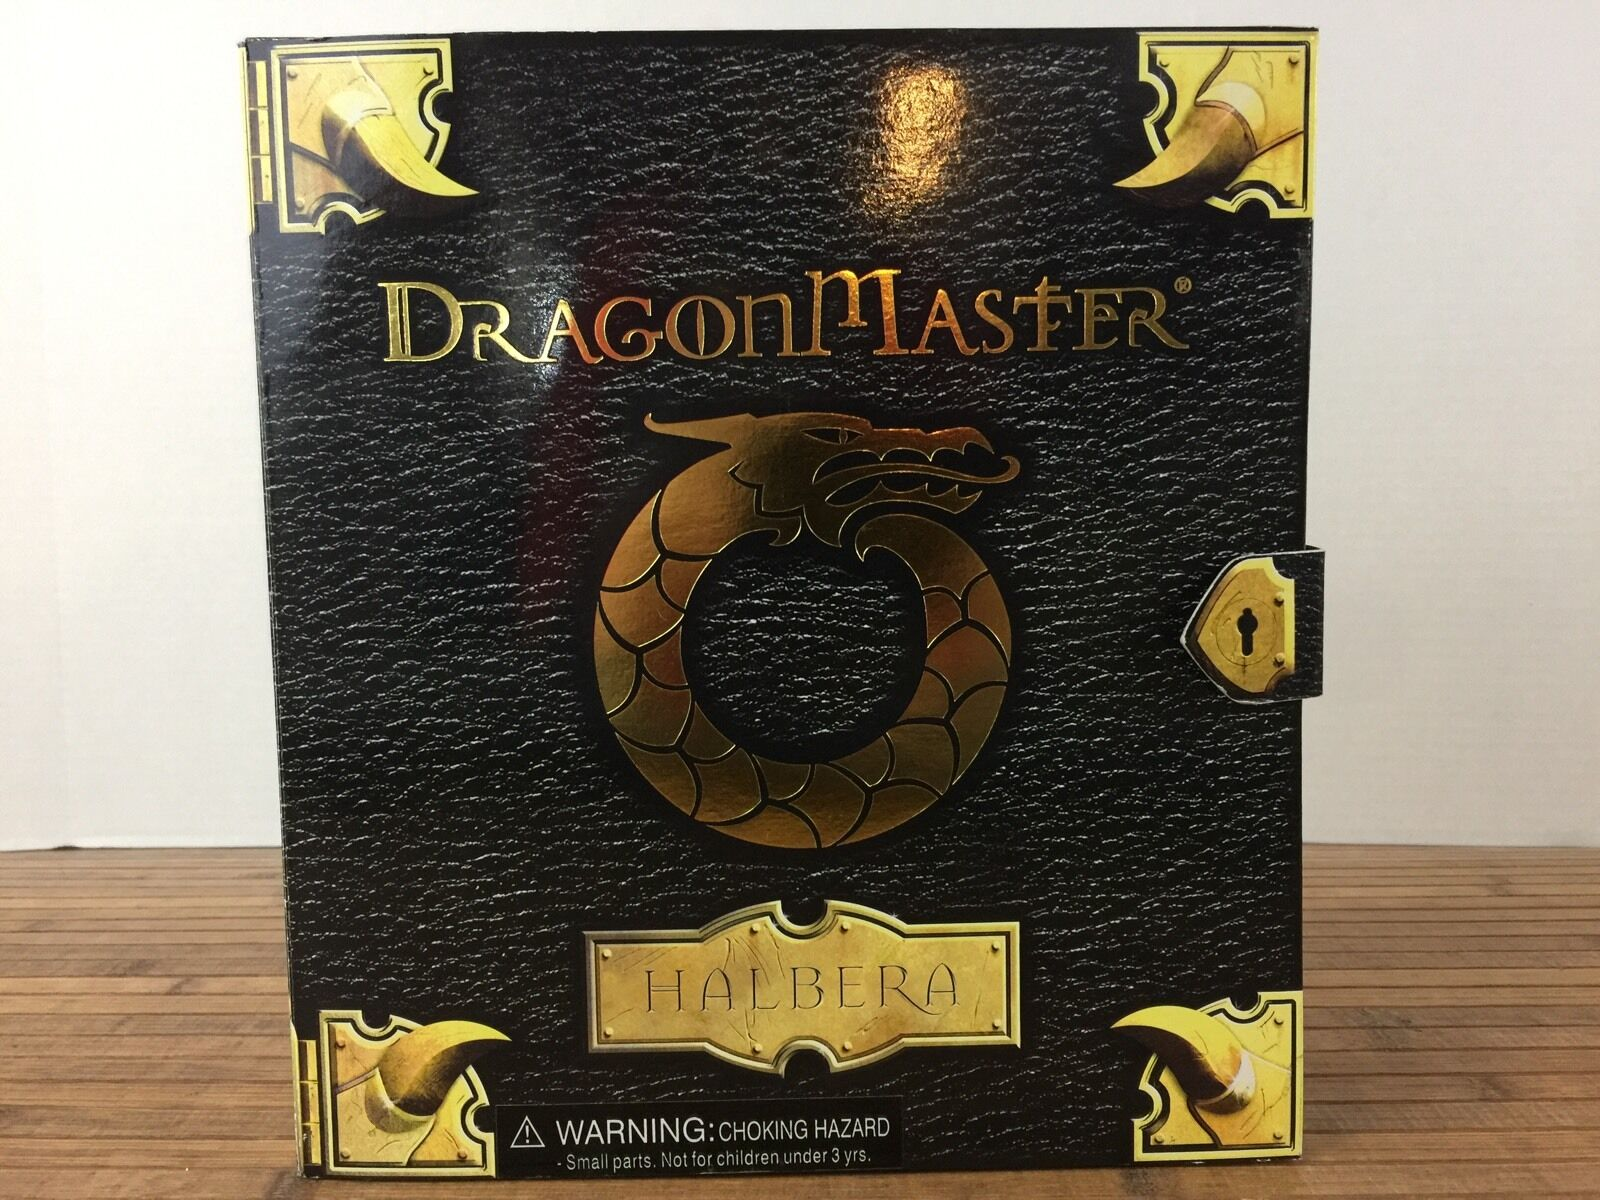 DRAGON MASTER HALBERA HALBERA HALBERA COLLECTION SERIES 1 NEW 6bbda8